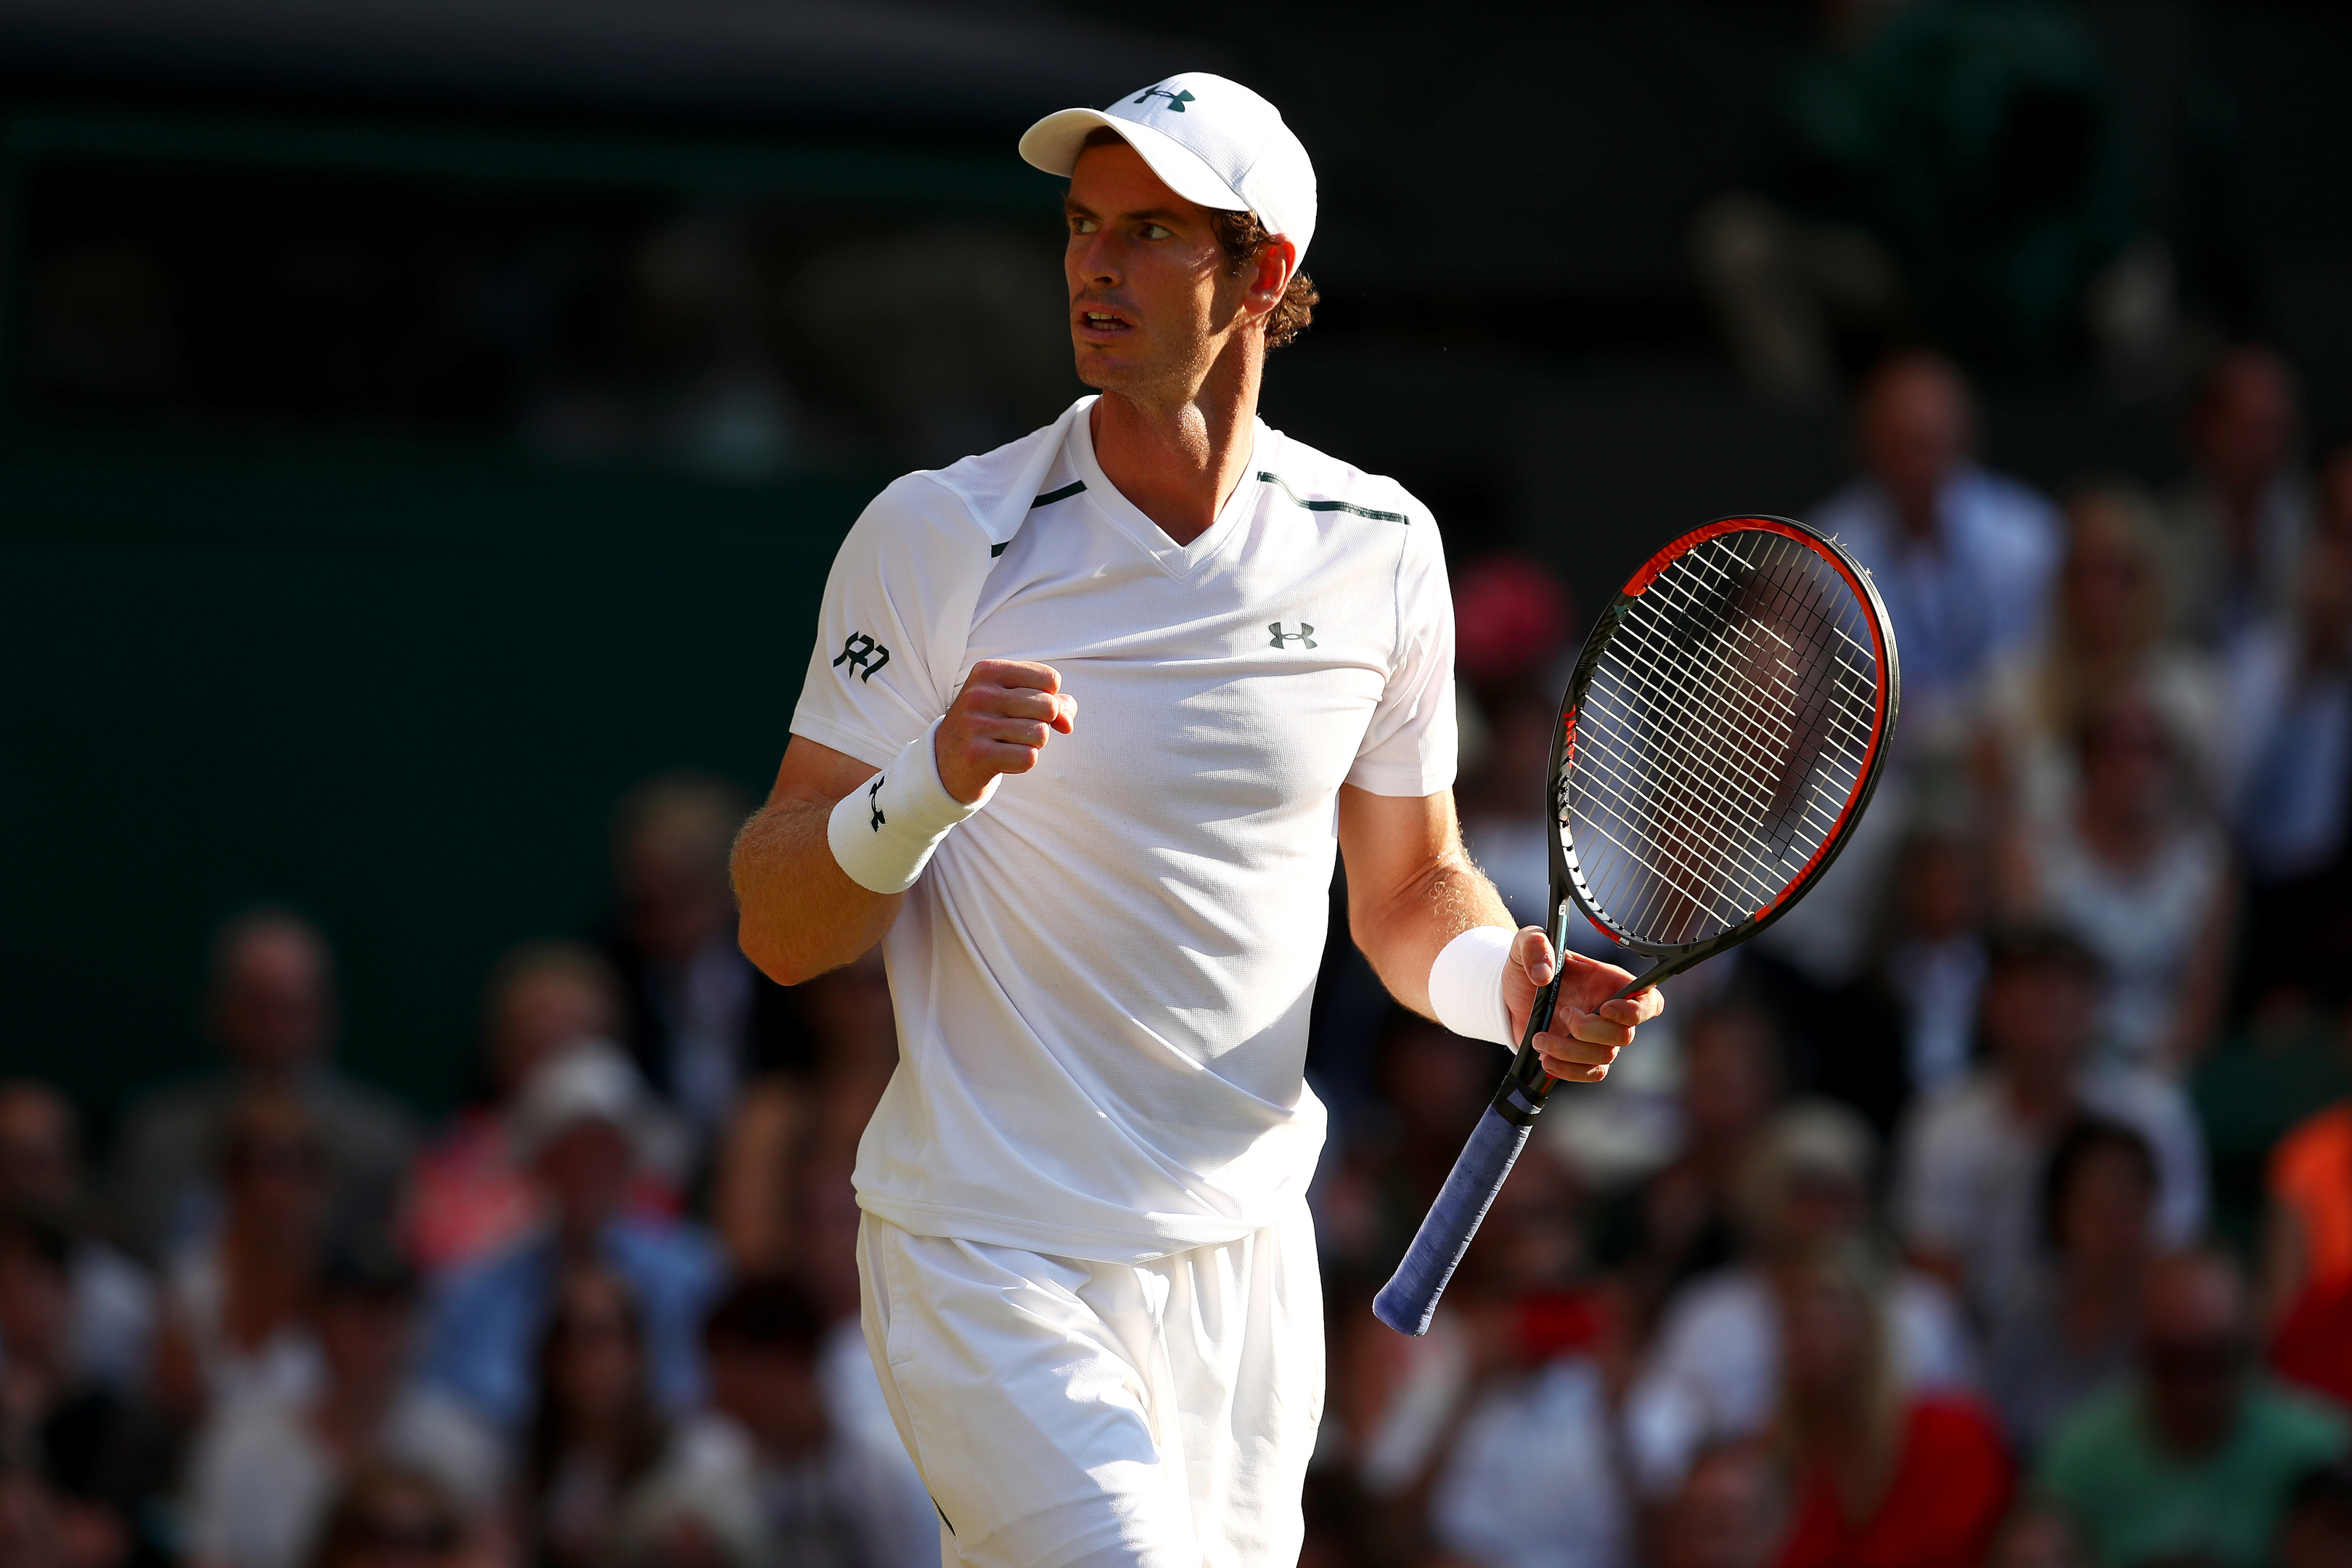 Andy Murray celebrates victory after his Gentlemen's Singles second round match against Dustin Brown of Germany on day three of Wimbledon (Clive Brunskill/Getty Images)